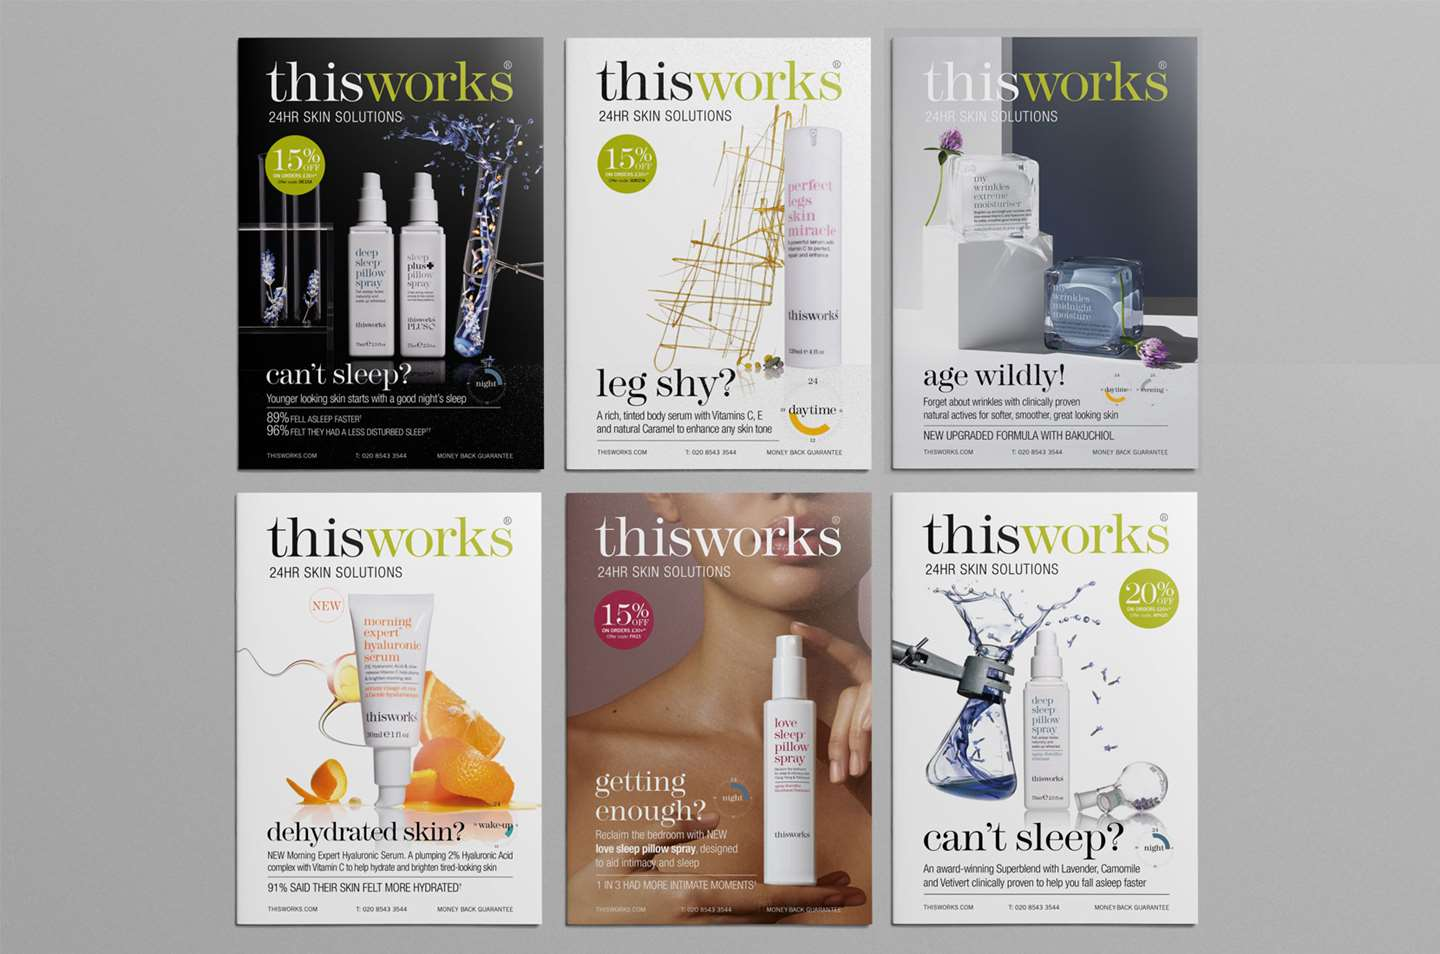 THISWORKS_Image_Large_cover2020-1.jpg